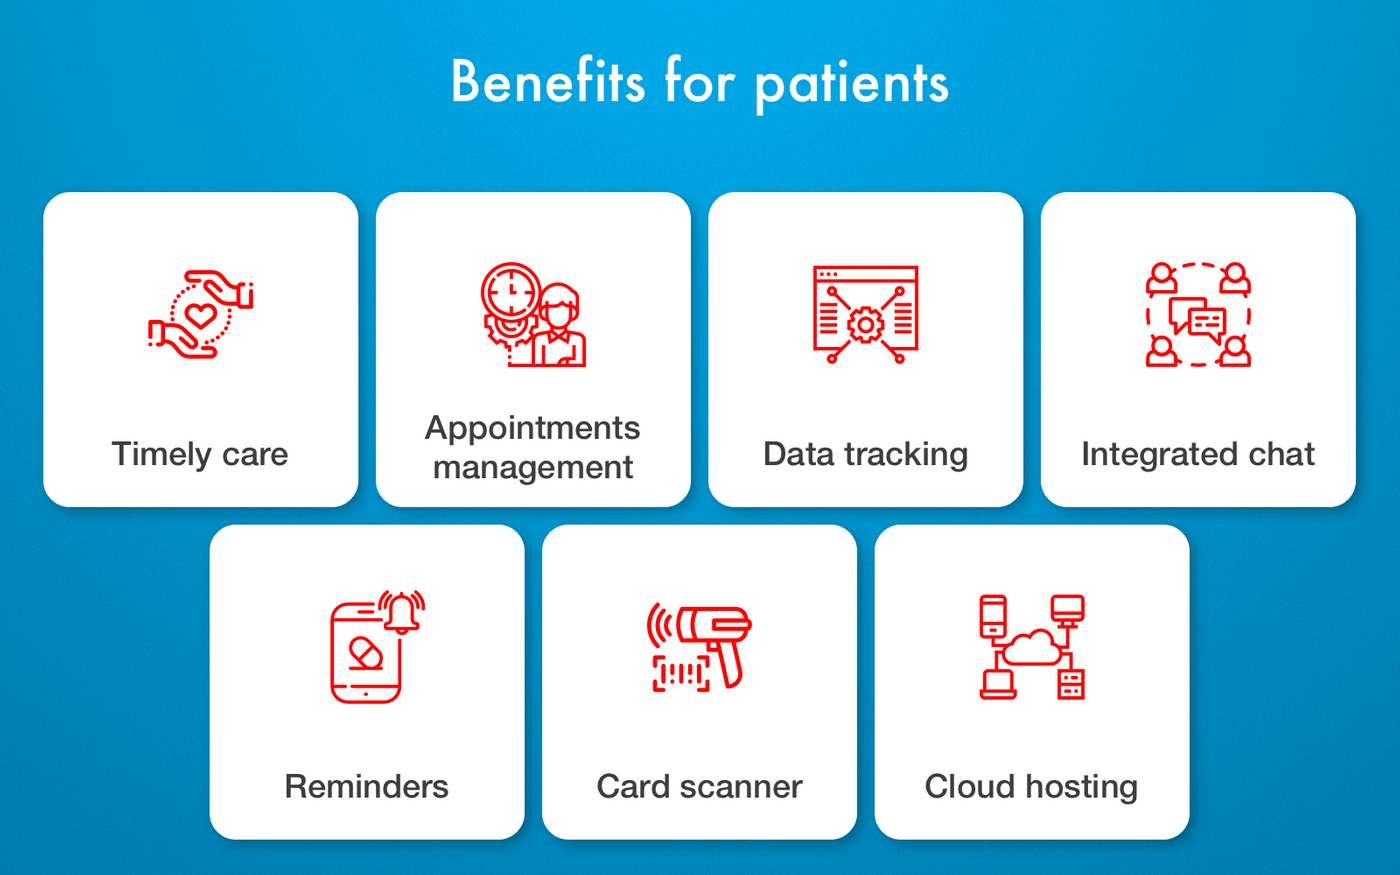 Benefits of EHR for patients